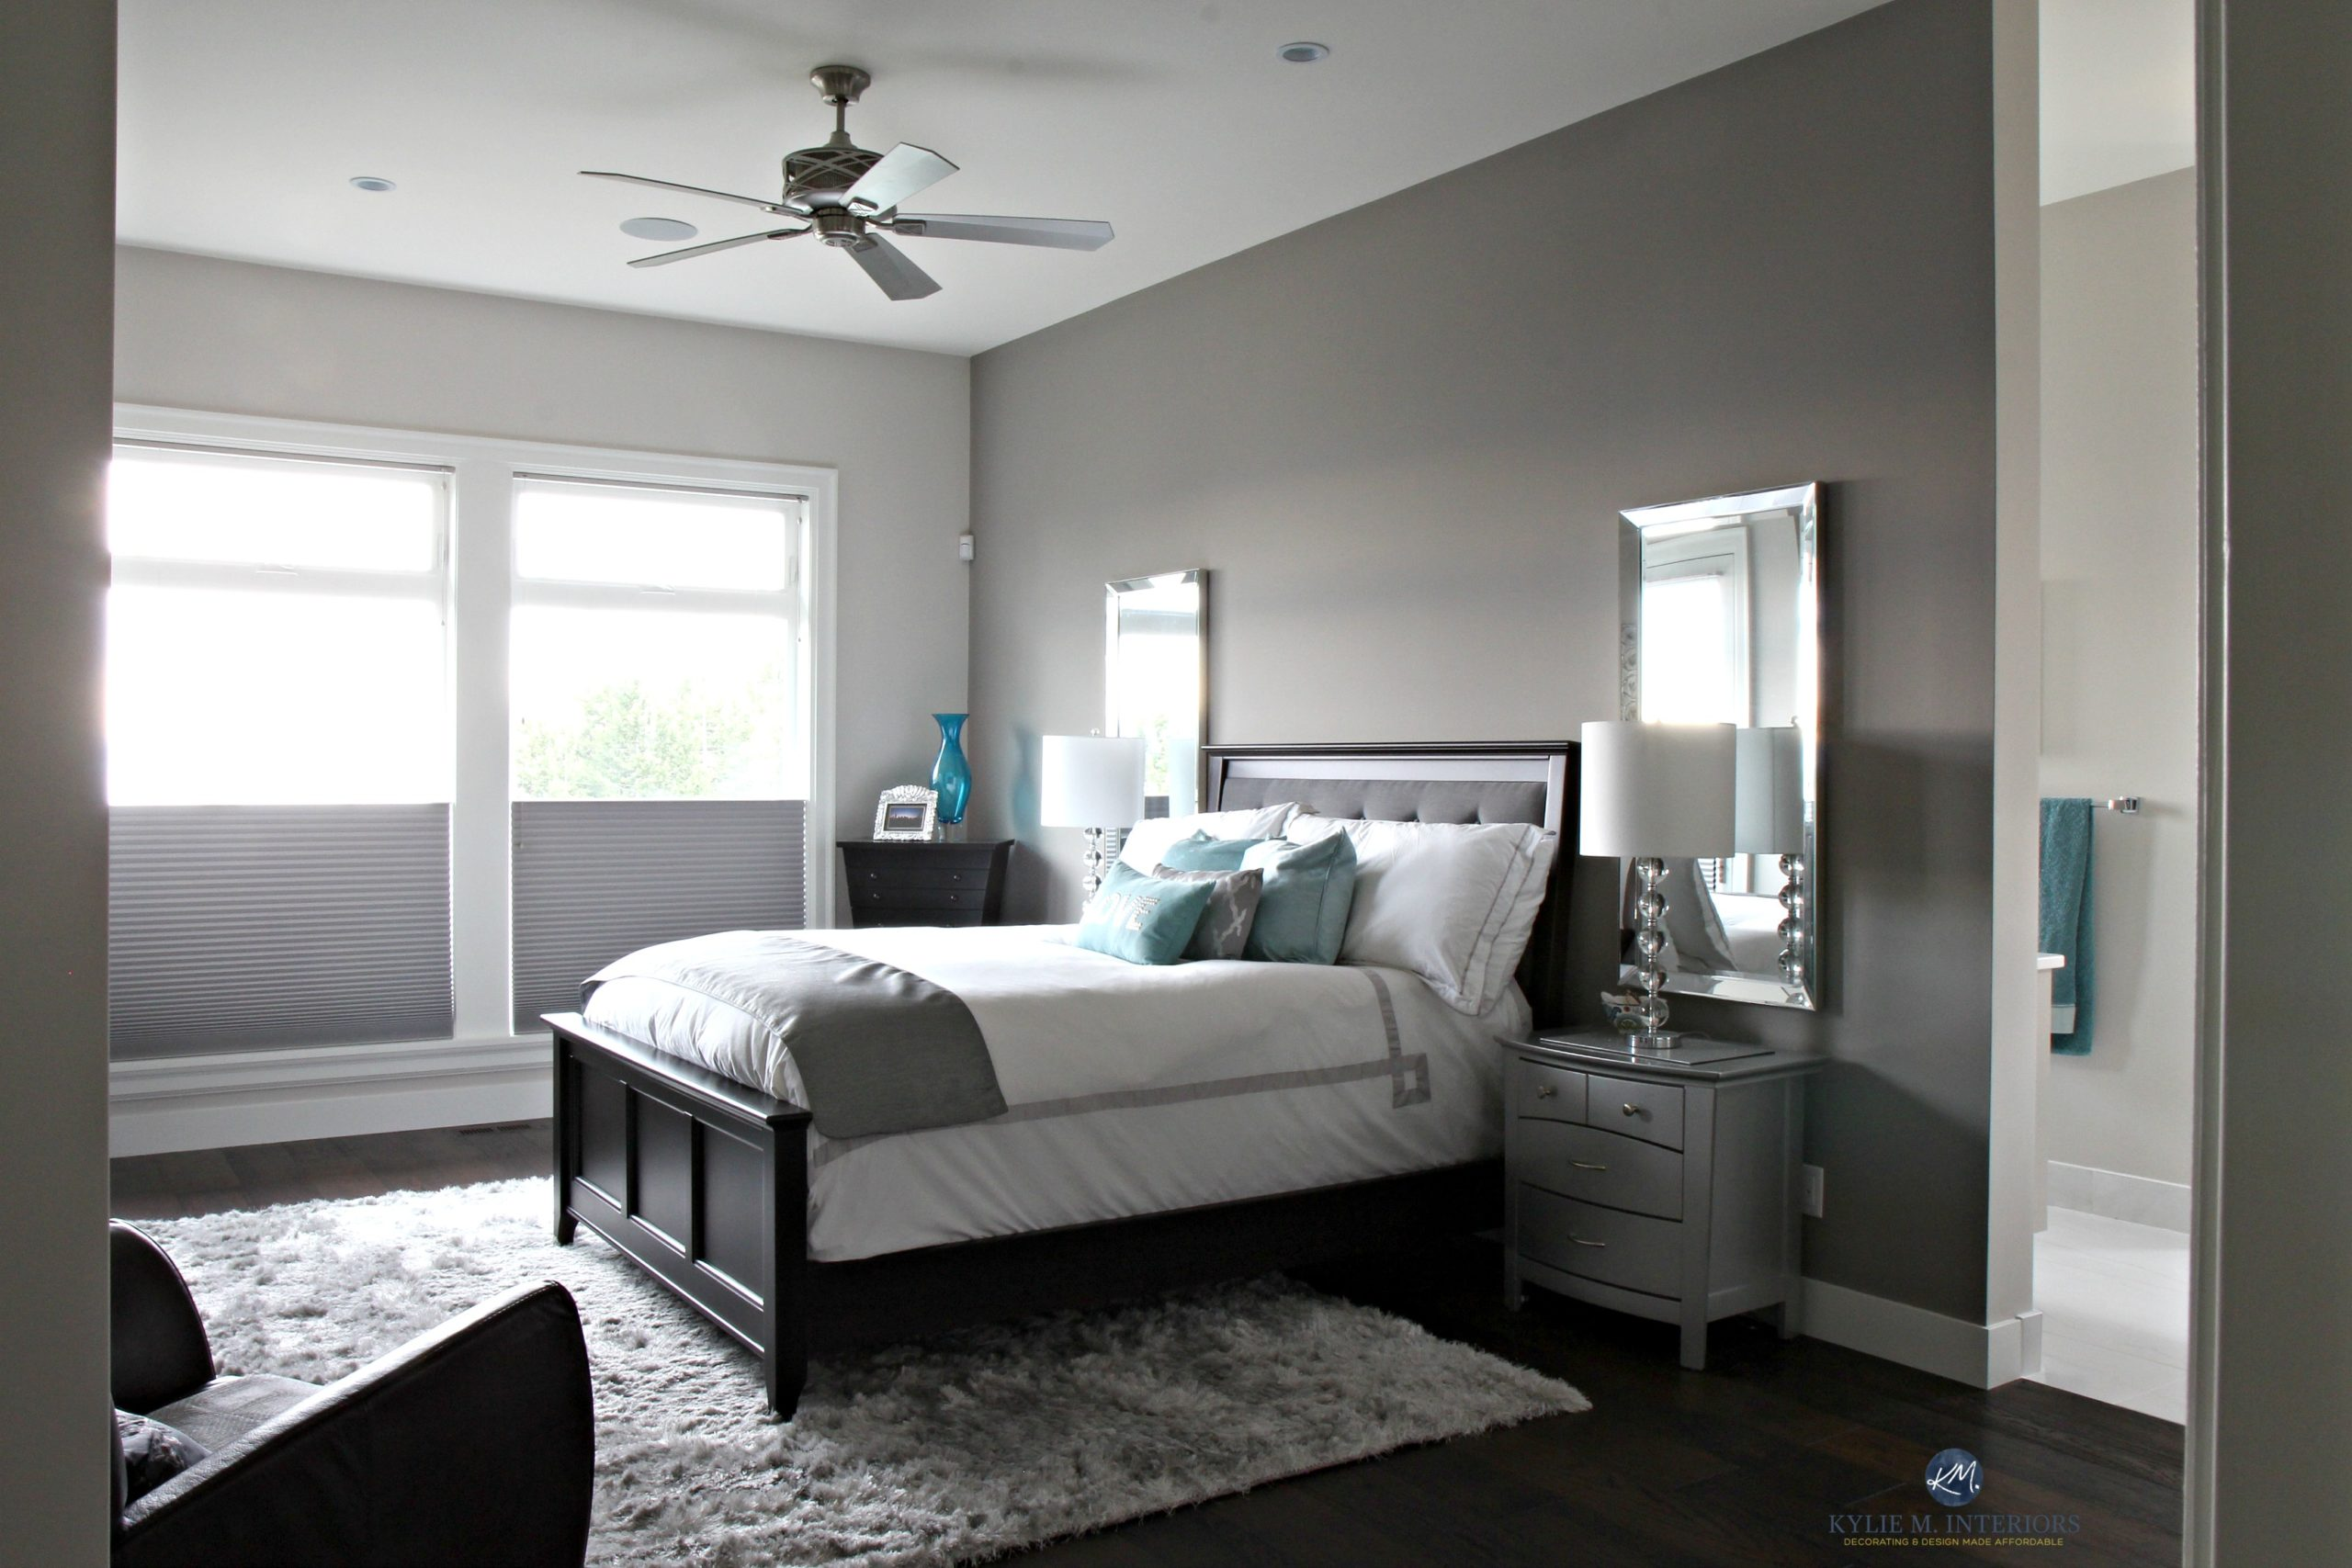 Accent Wall Ideas For Master Bedroom Master Bedroom Benjamin Moore Collingwood With Escarpment Feature